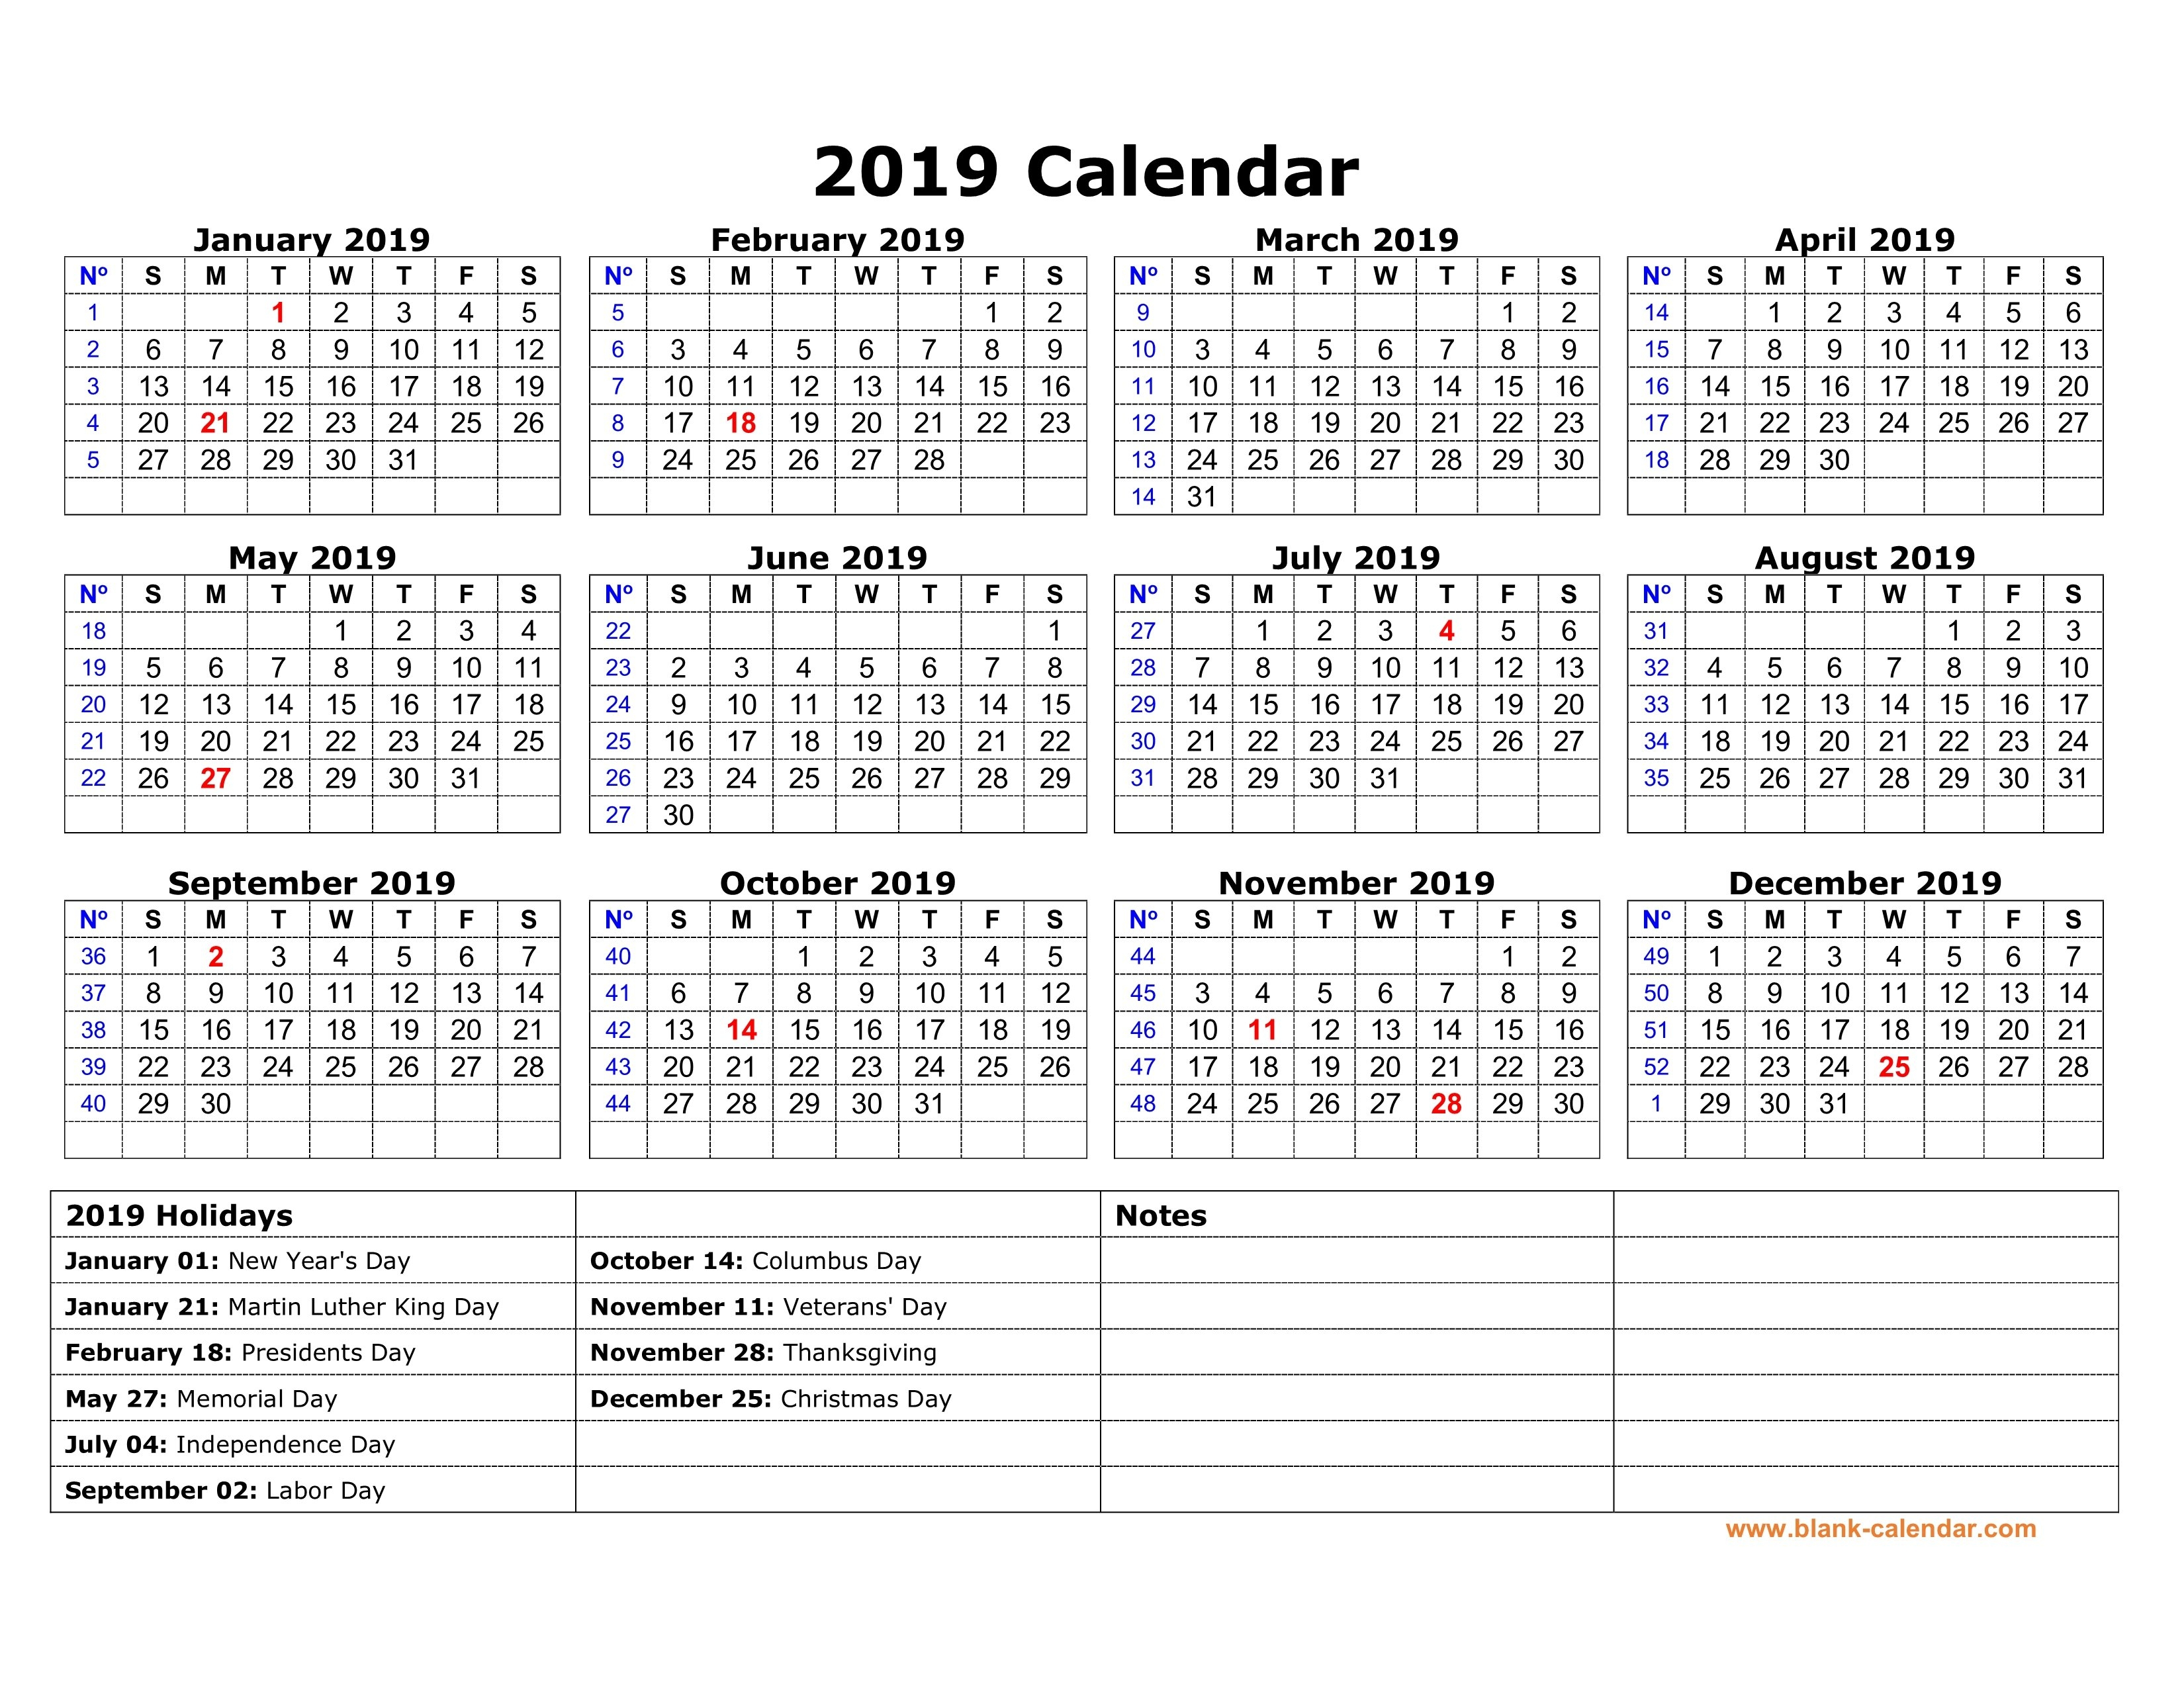 Free Download Printable Calendar 2019 With Us Federal Holidays, One Calendar 2019 Showing Holidays